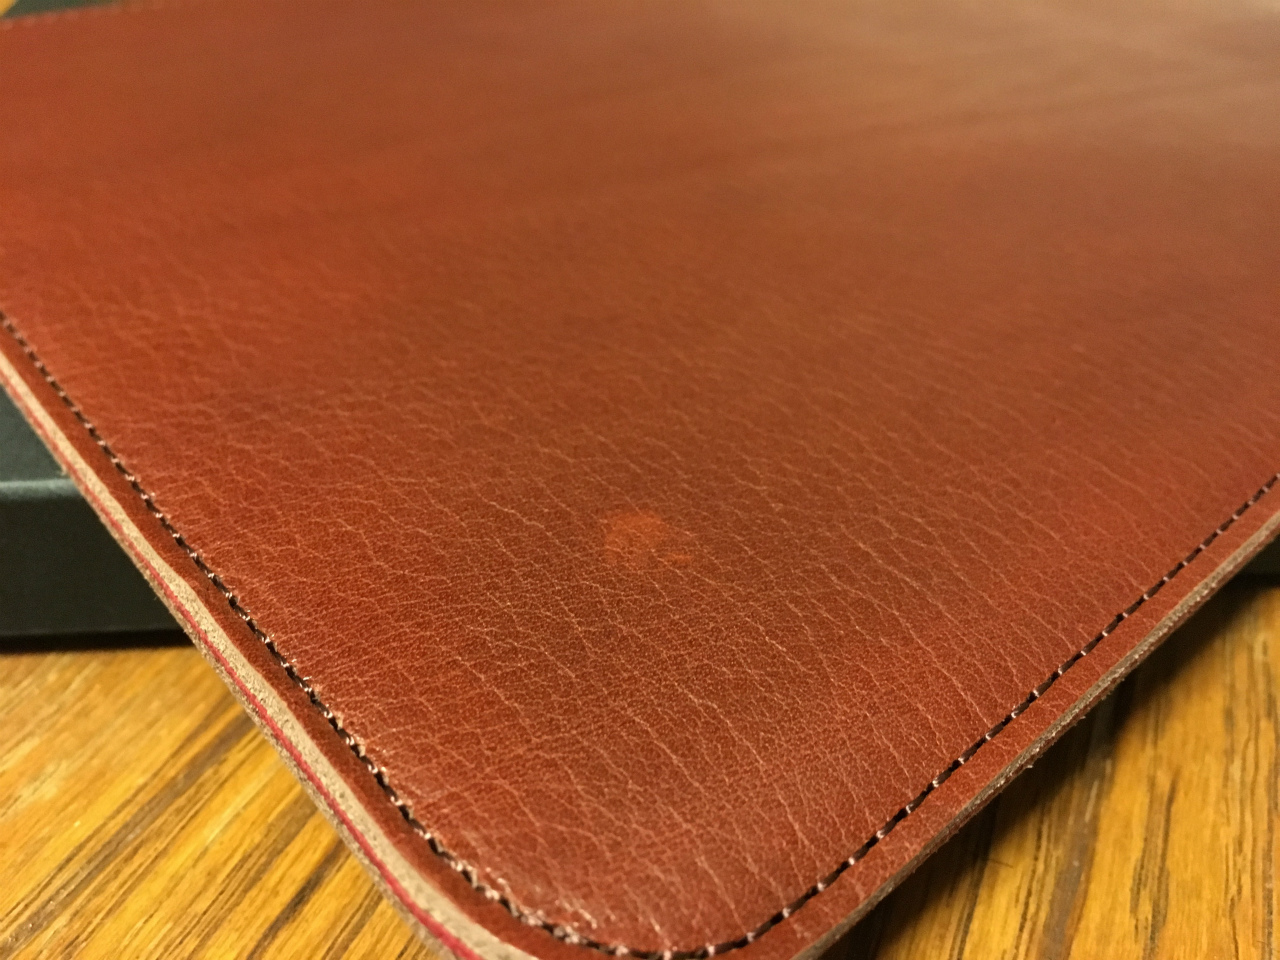 kunitachi-leather-sleeve-for-ipadpro-03